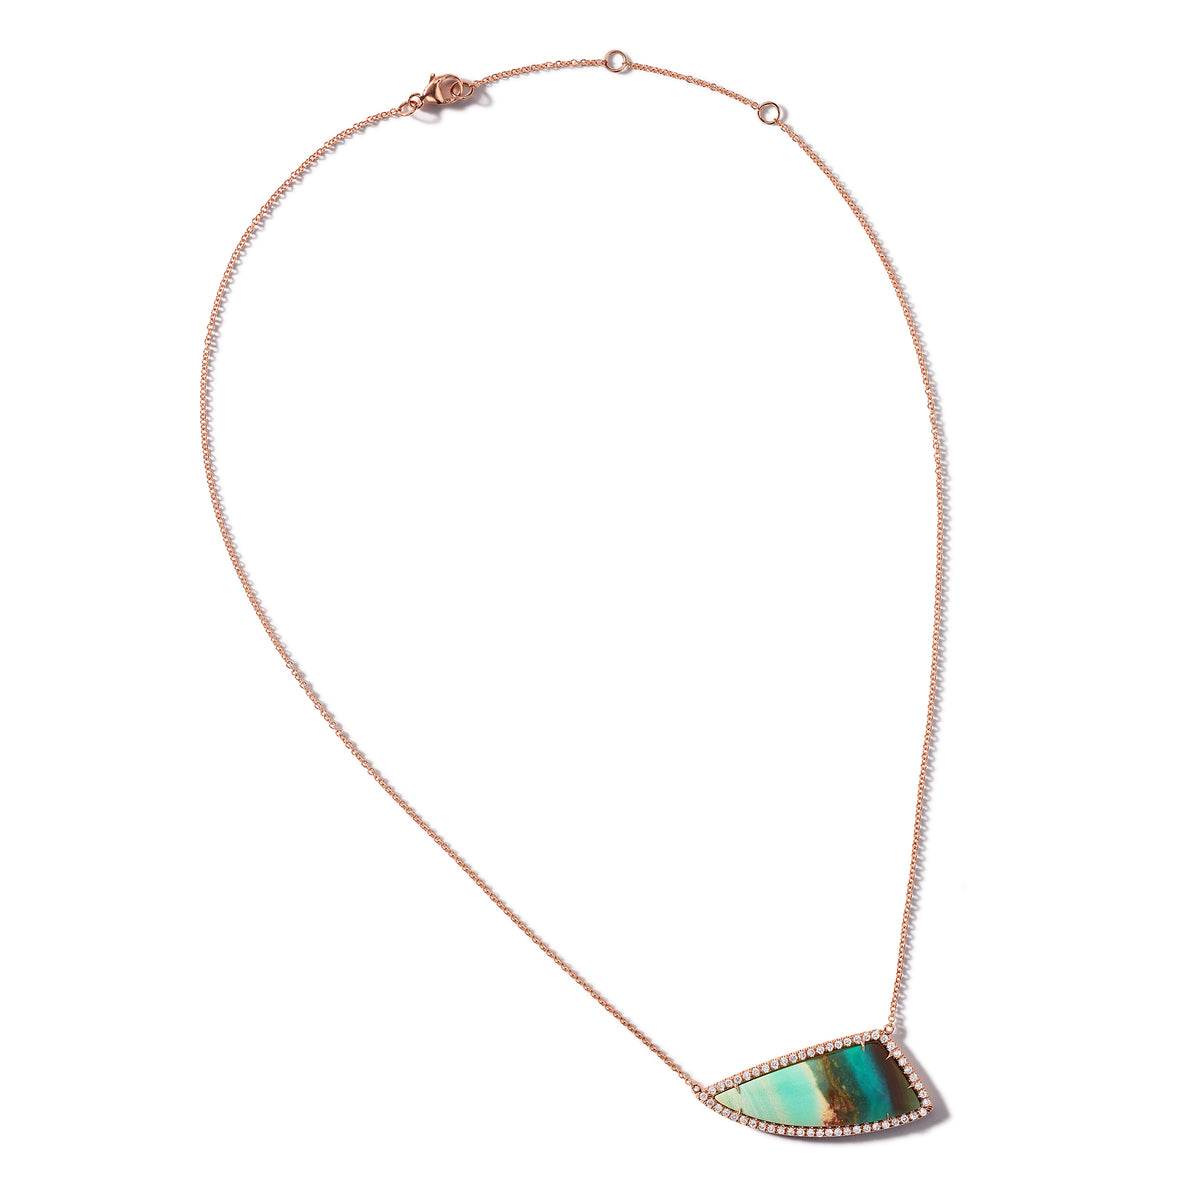 Tree Opal and Pave Diamond Necklace